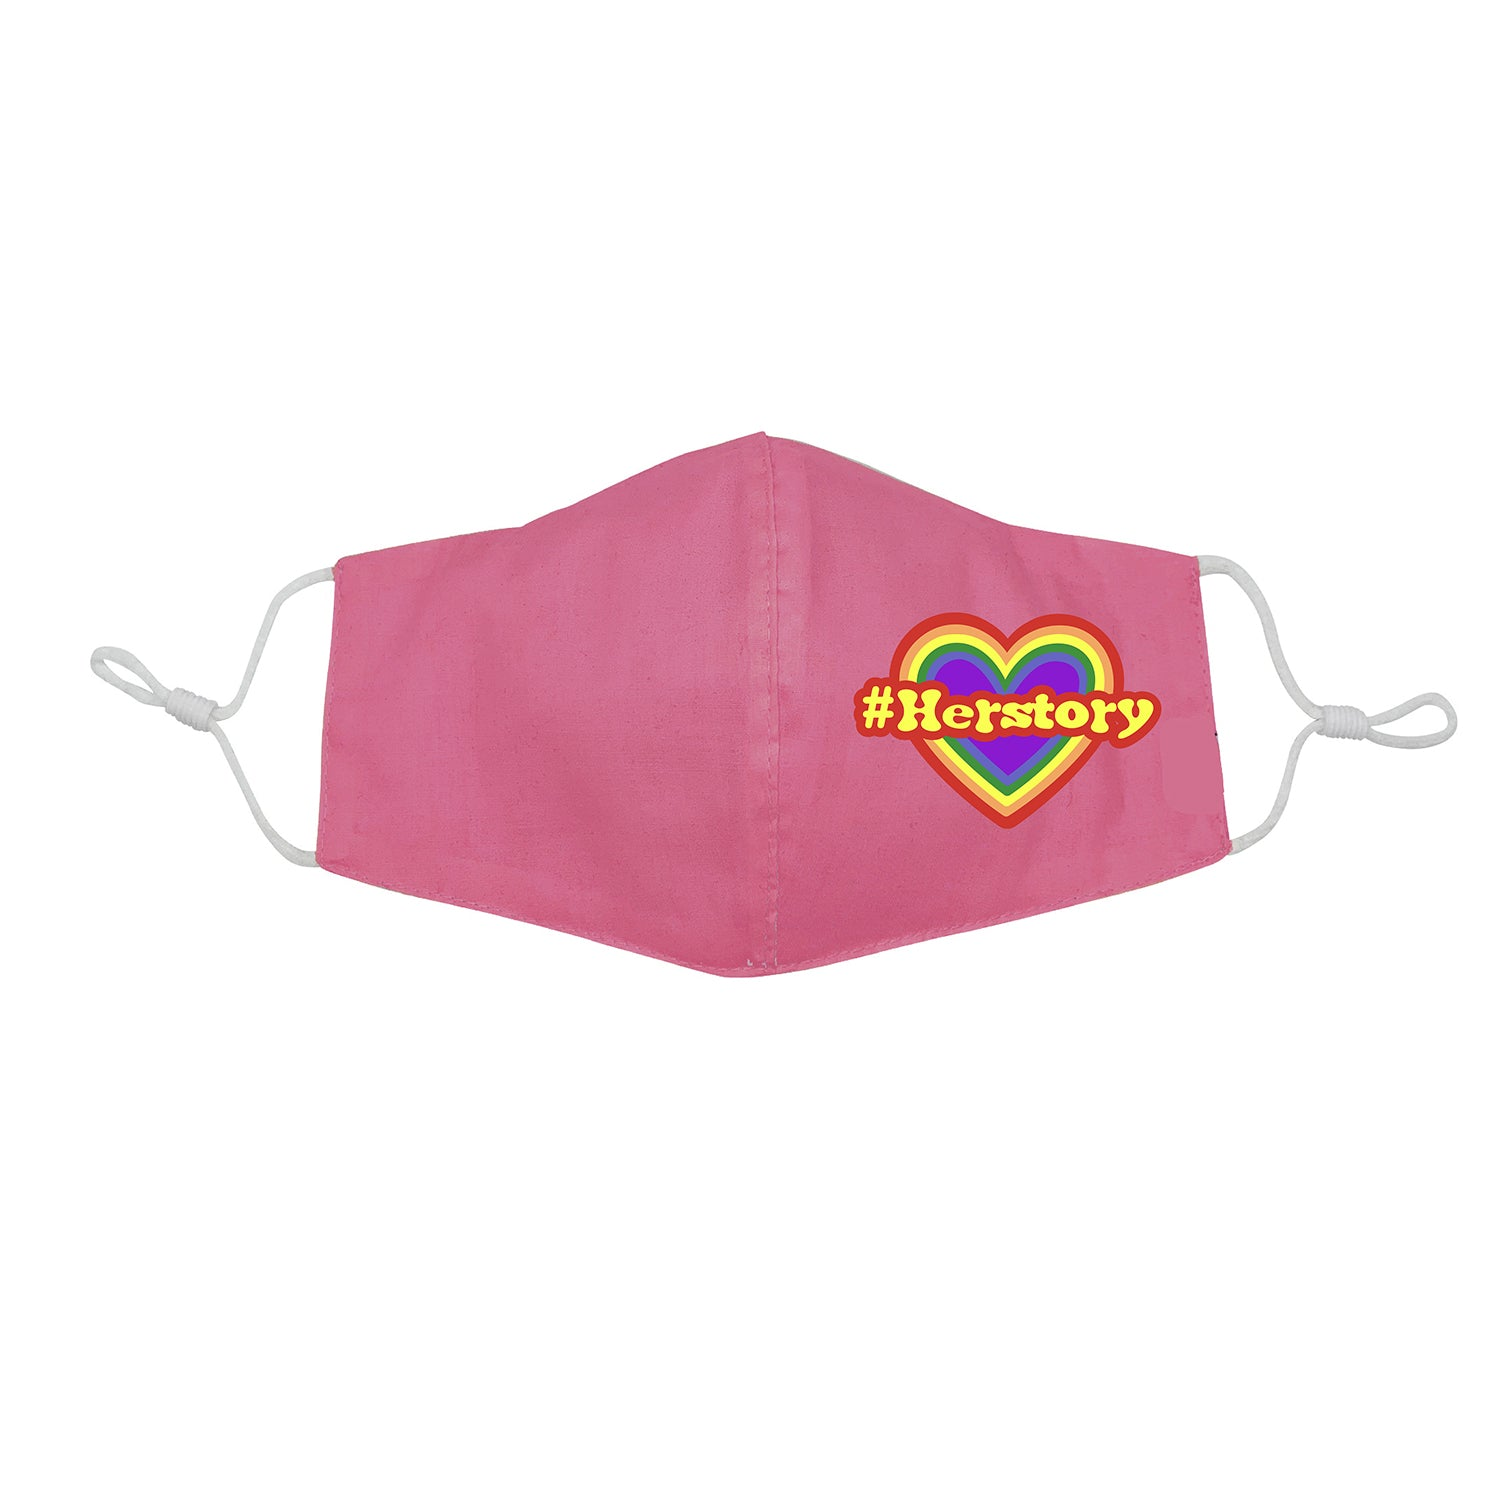 #Herstory Rainbow Heart for Kids Face Mask